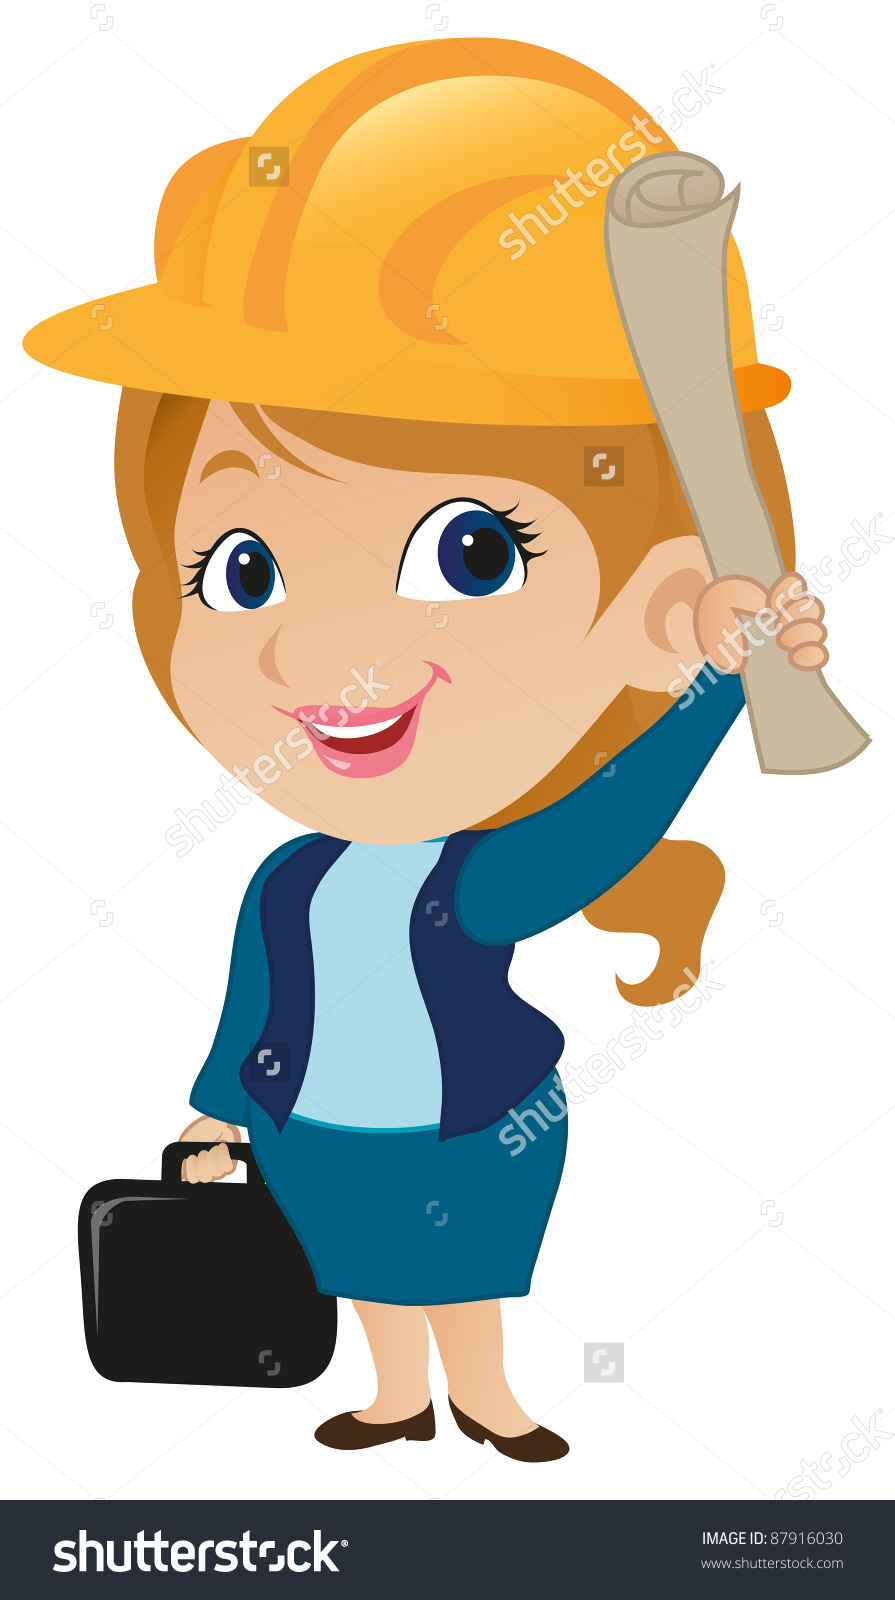 Female Architect Clipart. Save to a ligh-Female Architect Clipart. Save to a lightbox-15